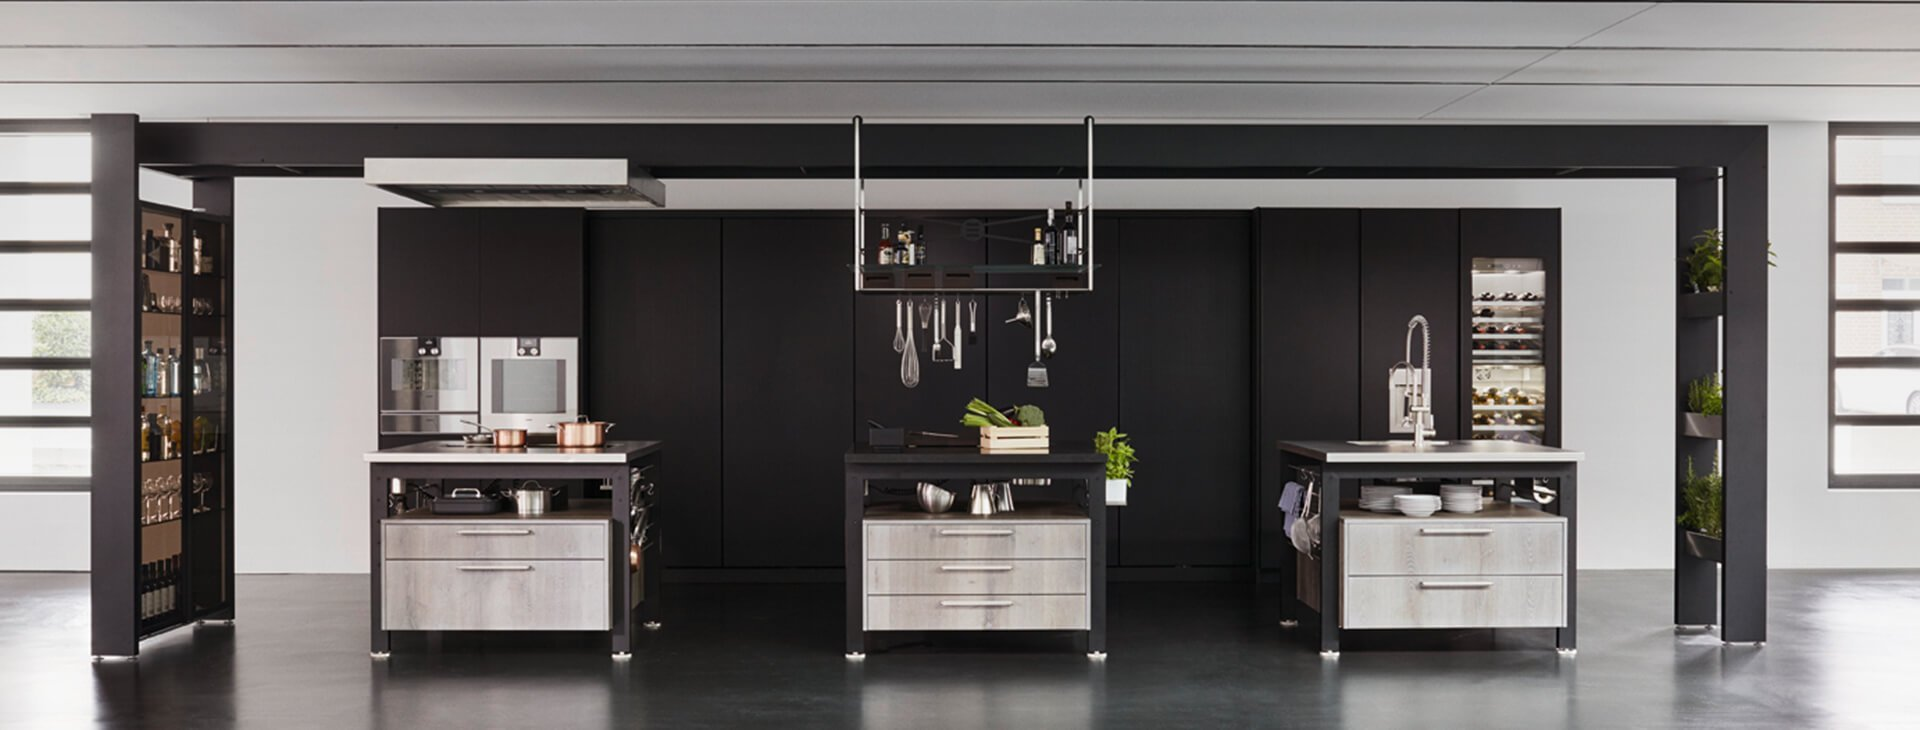 intact k chen design b der m ller ihre stores im stilwerk d sseldorf. Black Bedroom Furniture Sets. Home Design Ideas